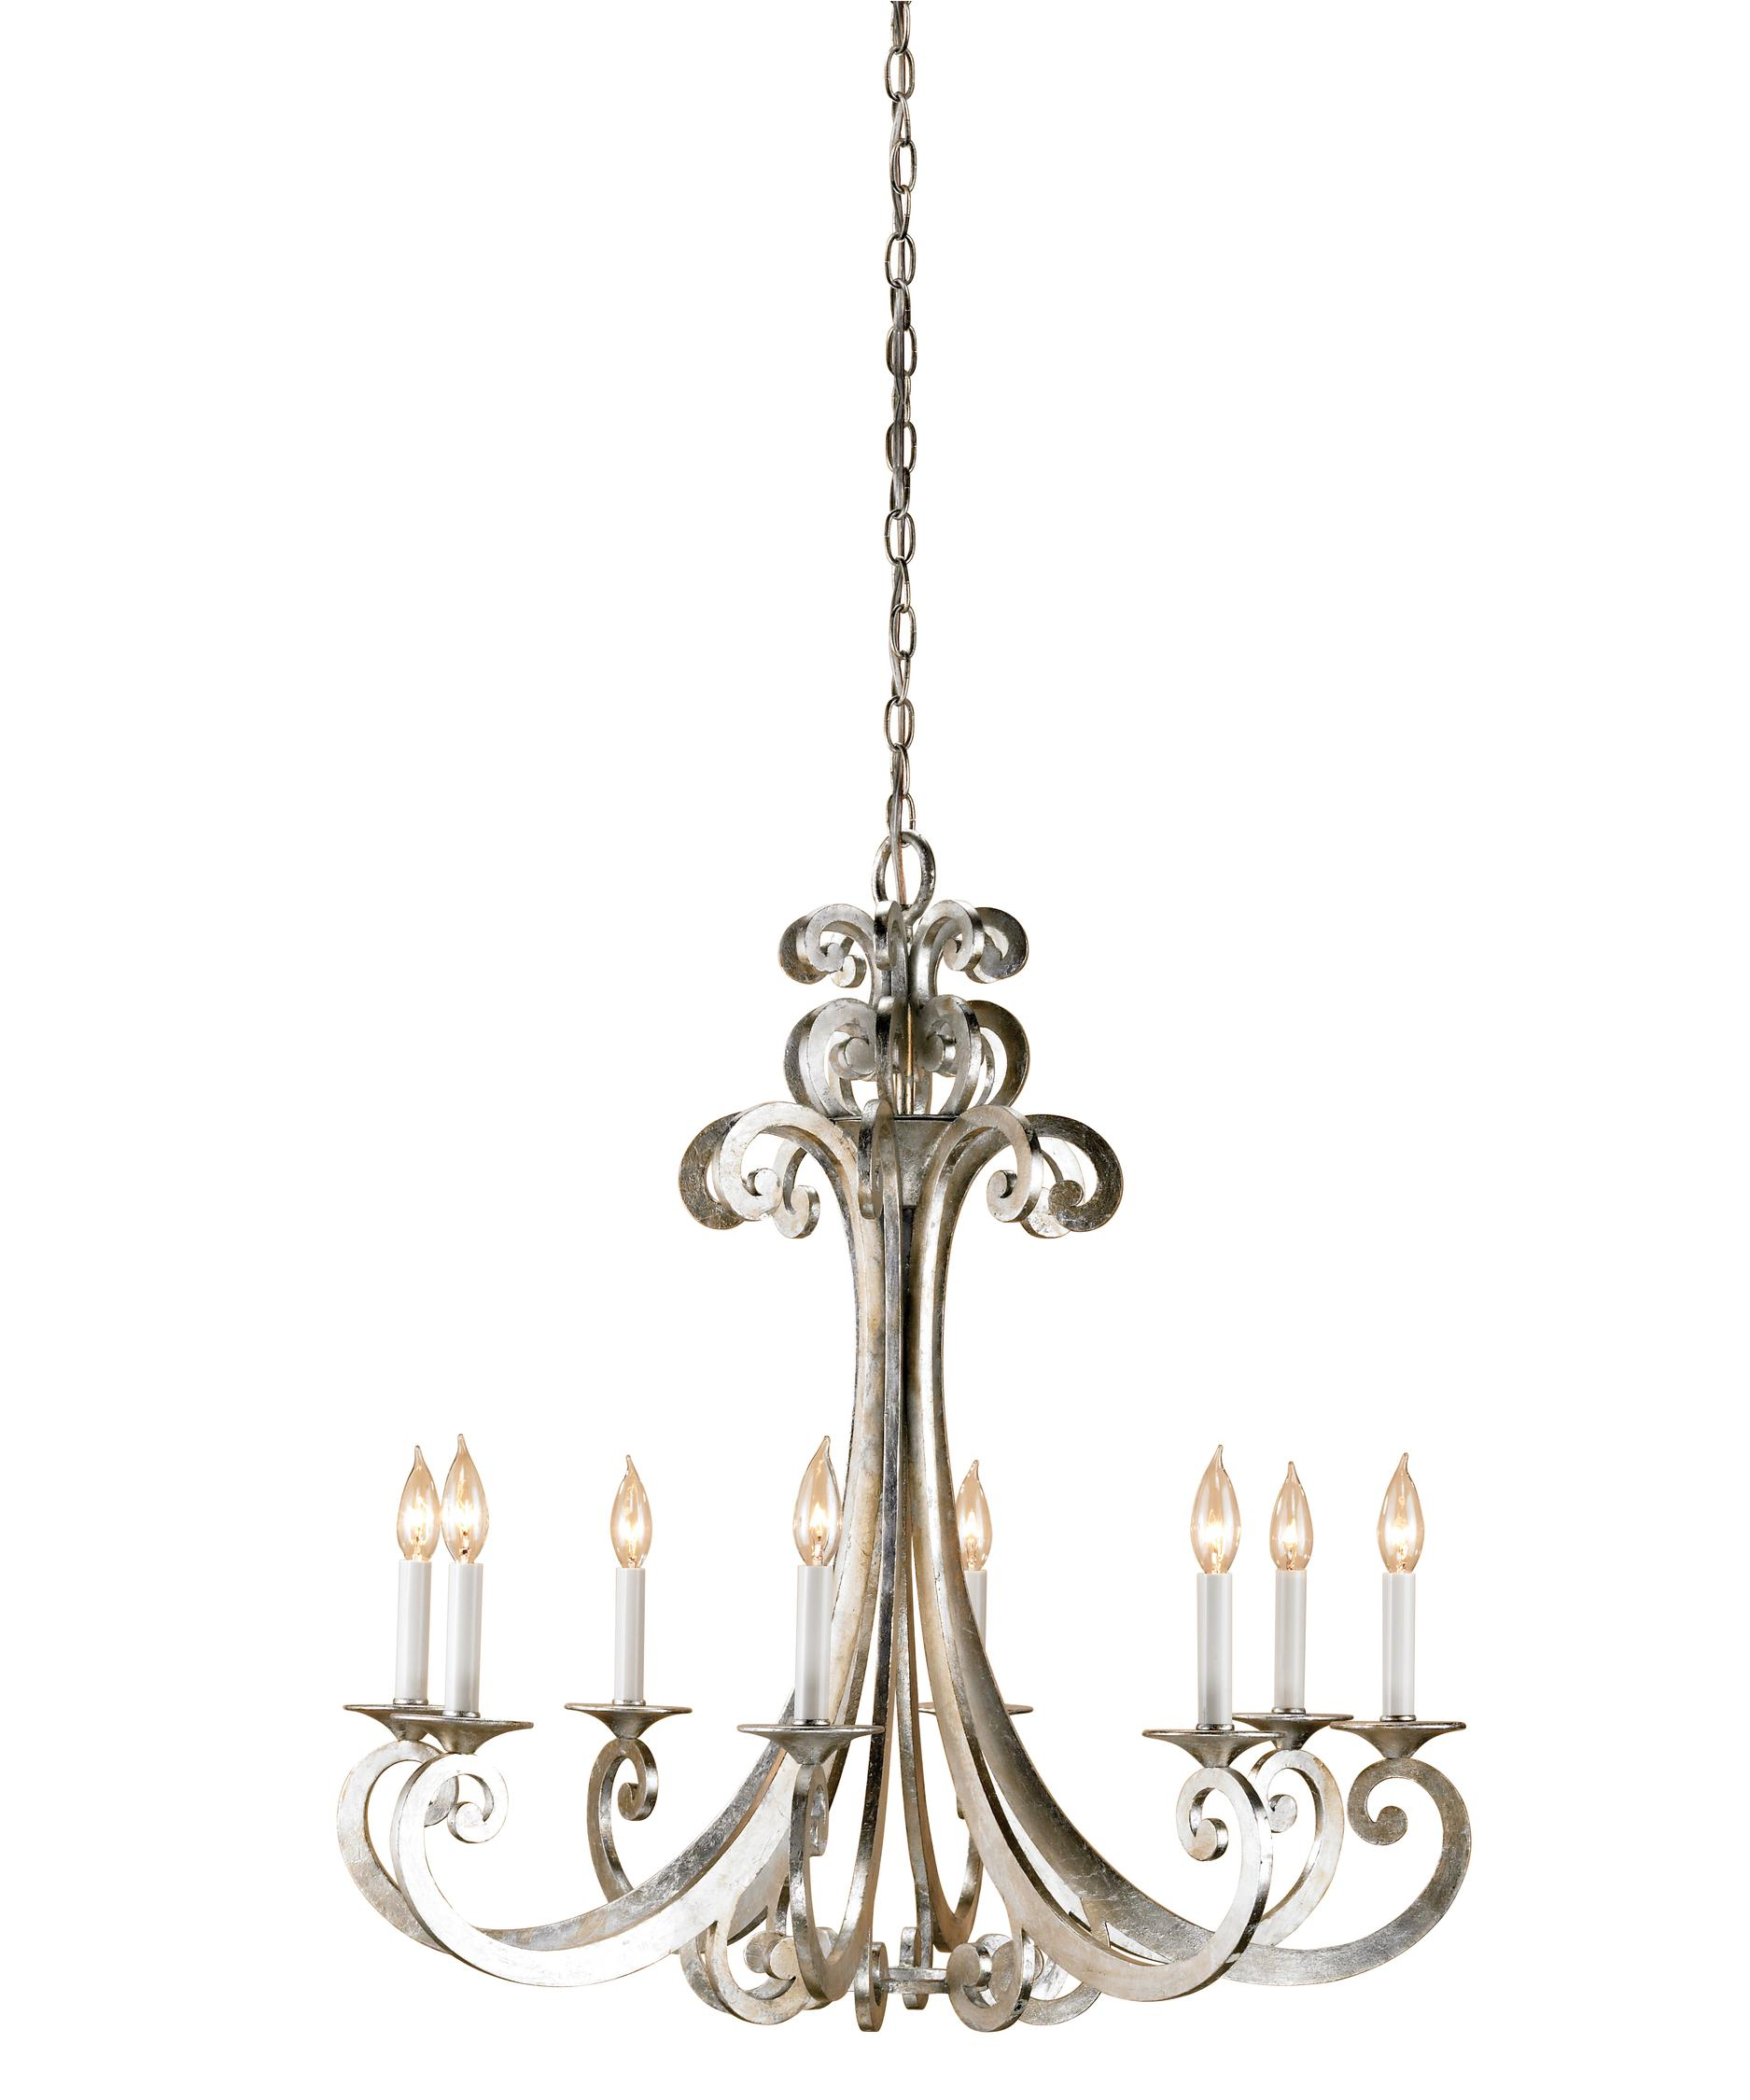 Currey And Company Bathroom Lighting: Currey And Company 9666 Constellation 32 Inch Chandelier